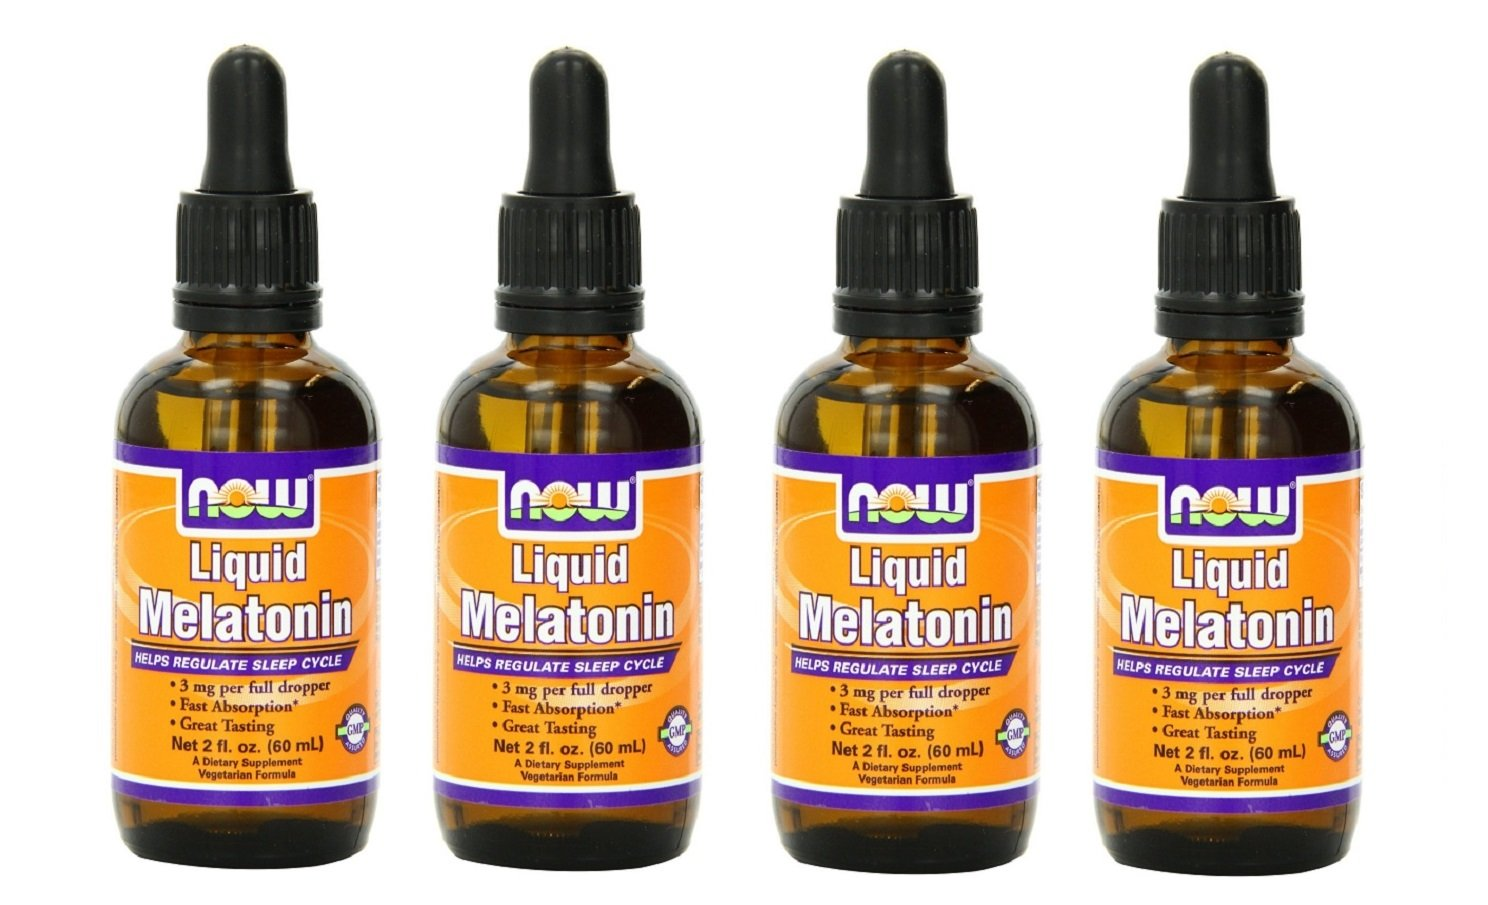 Amazon.com: Liquid Melatonin 3mg (Pack of 4) Now Foods 8 oz. (4 x 2 oz.) Liquid: Health & Personal Care